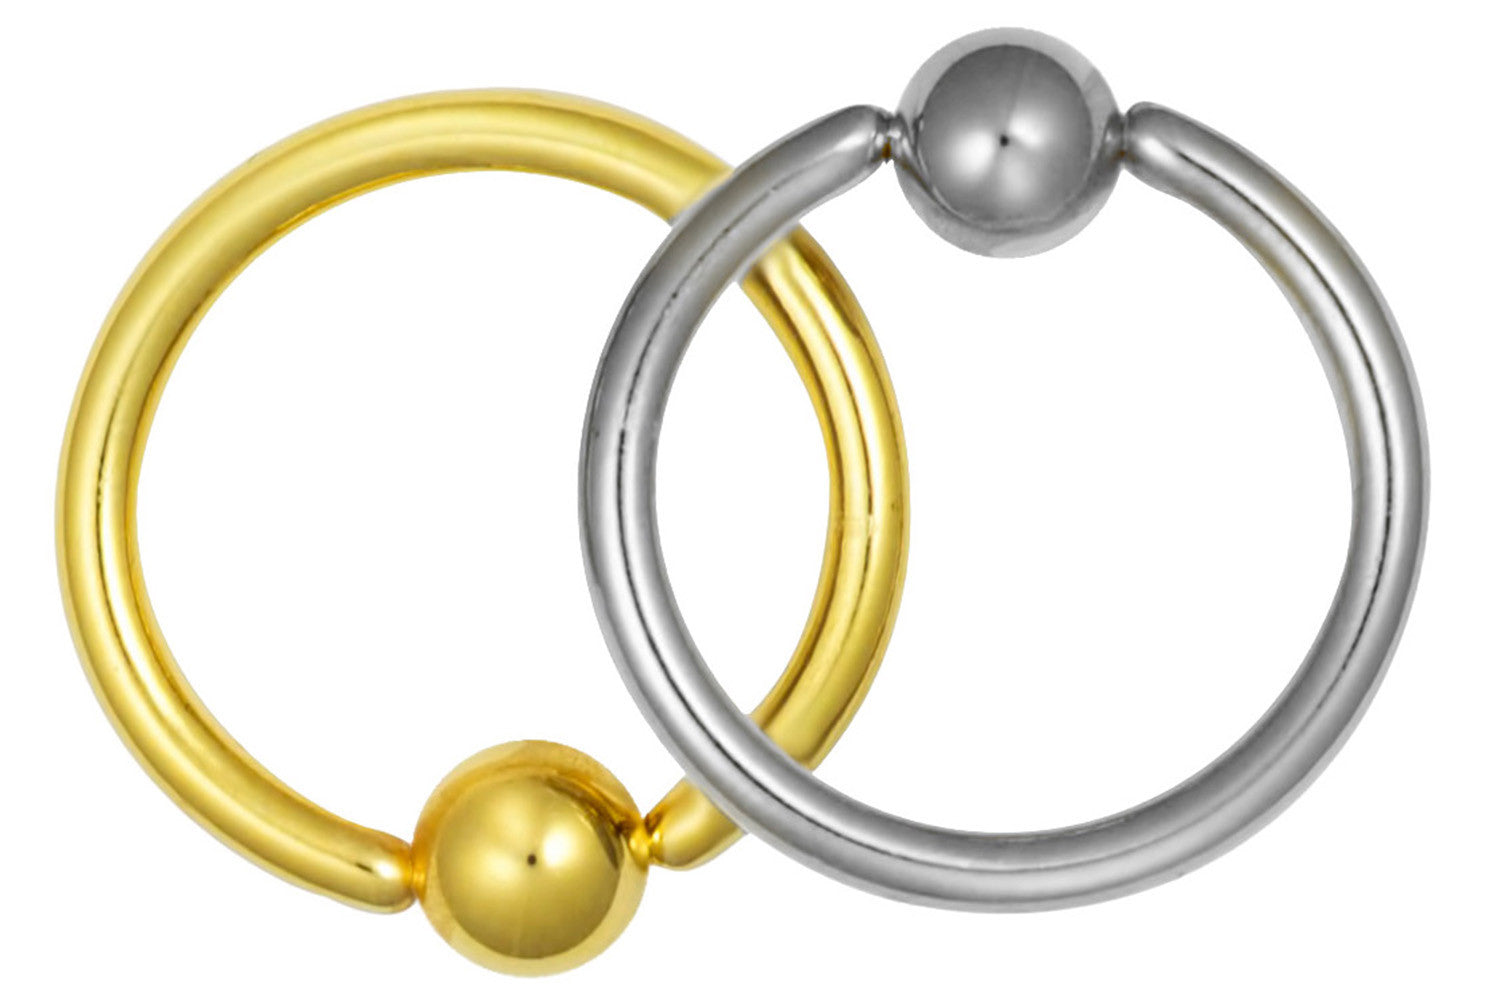 Pair of 14k Gold Plated Captive Bead Nipple Rings